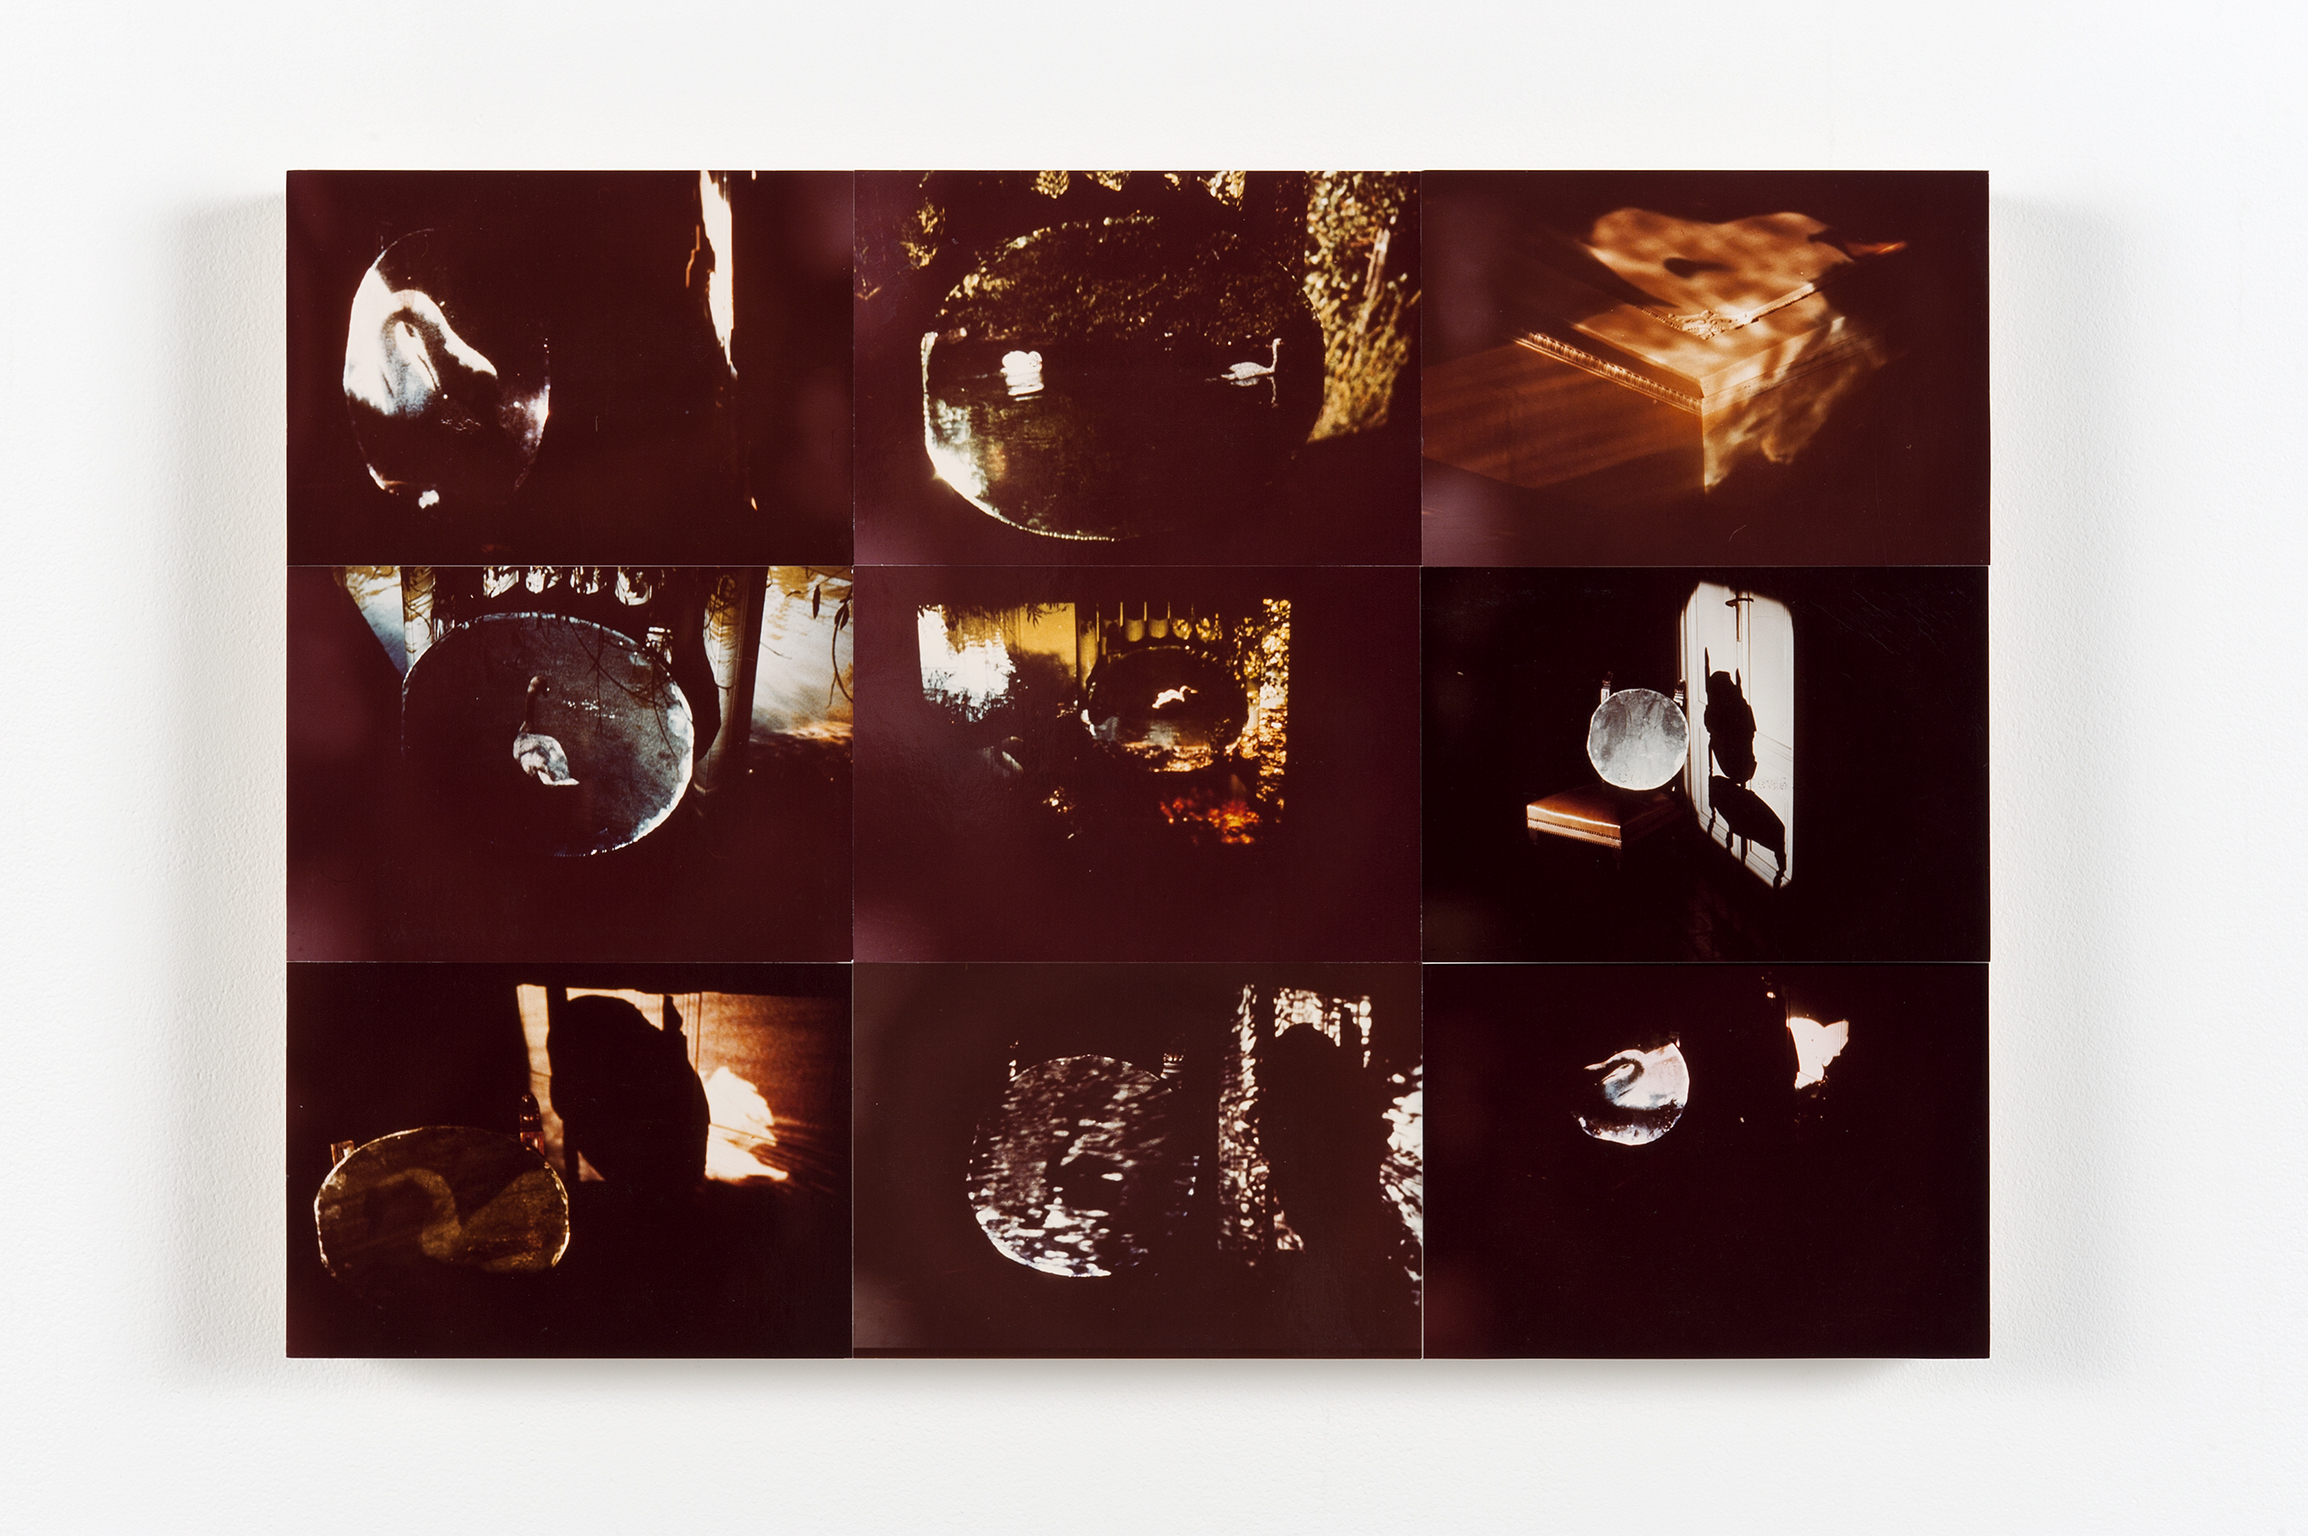 ​Robert Kleyn, Projections with Images of a Swan, 1977, colour photographs, 15 x 22 in. (38 x 55 cm) by